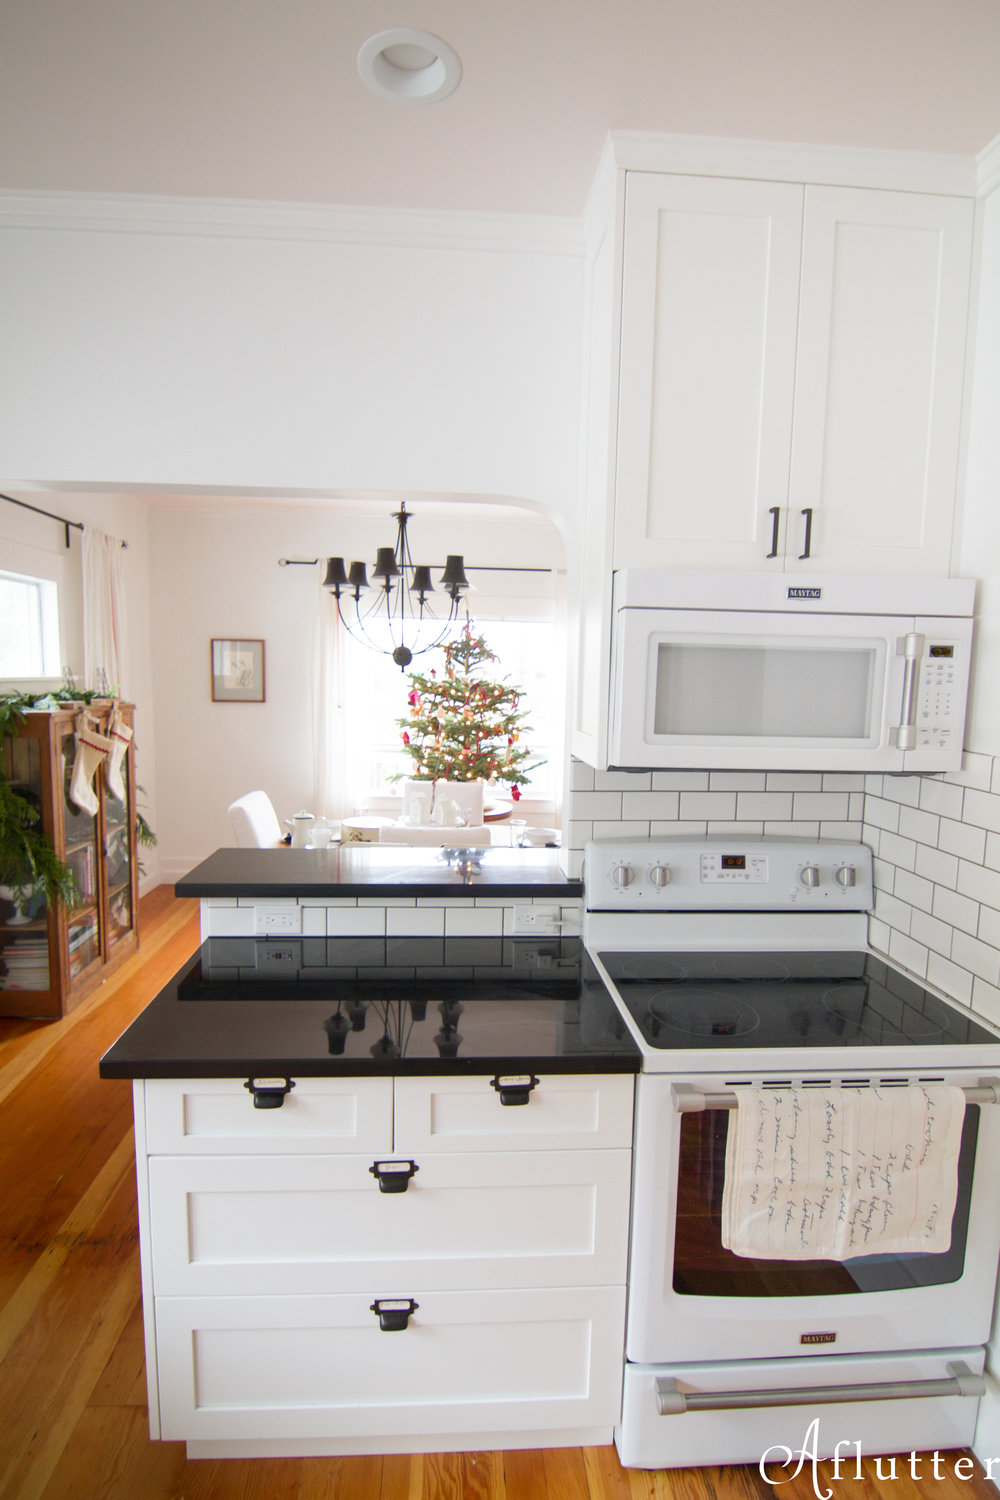 Christmas-Kitchen-Reveal-18-of-20.jpg